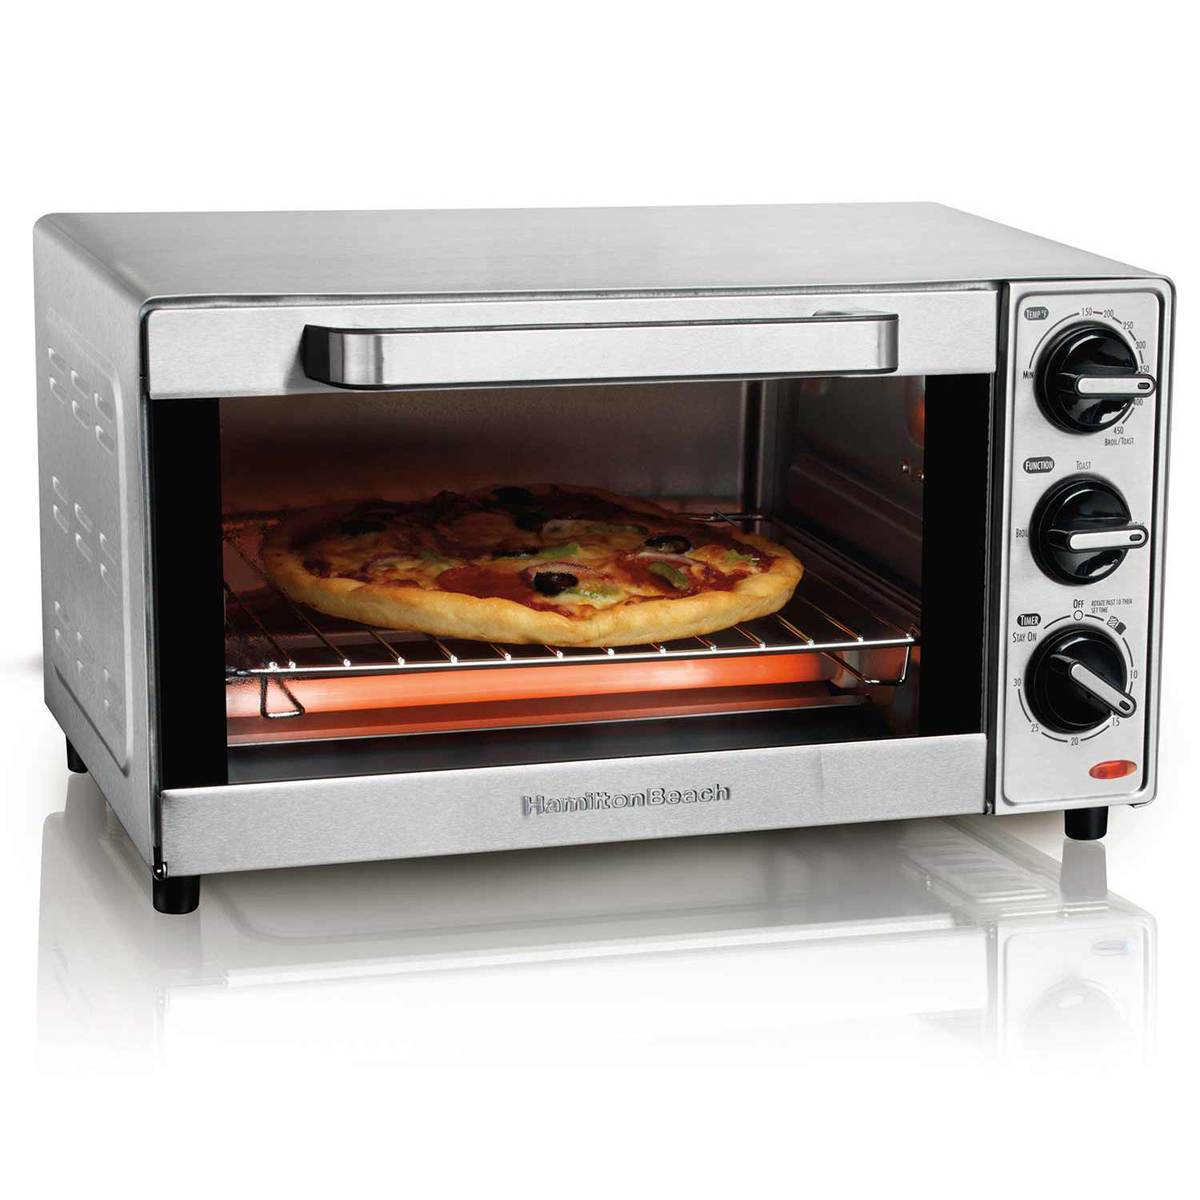 Warming up pizza in toaster oven